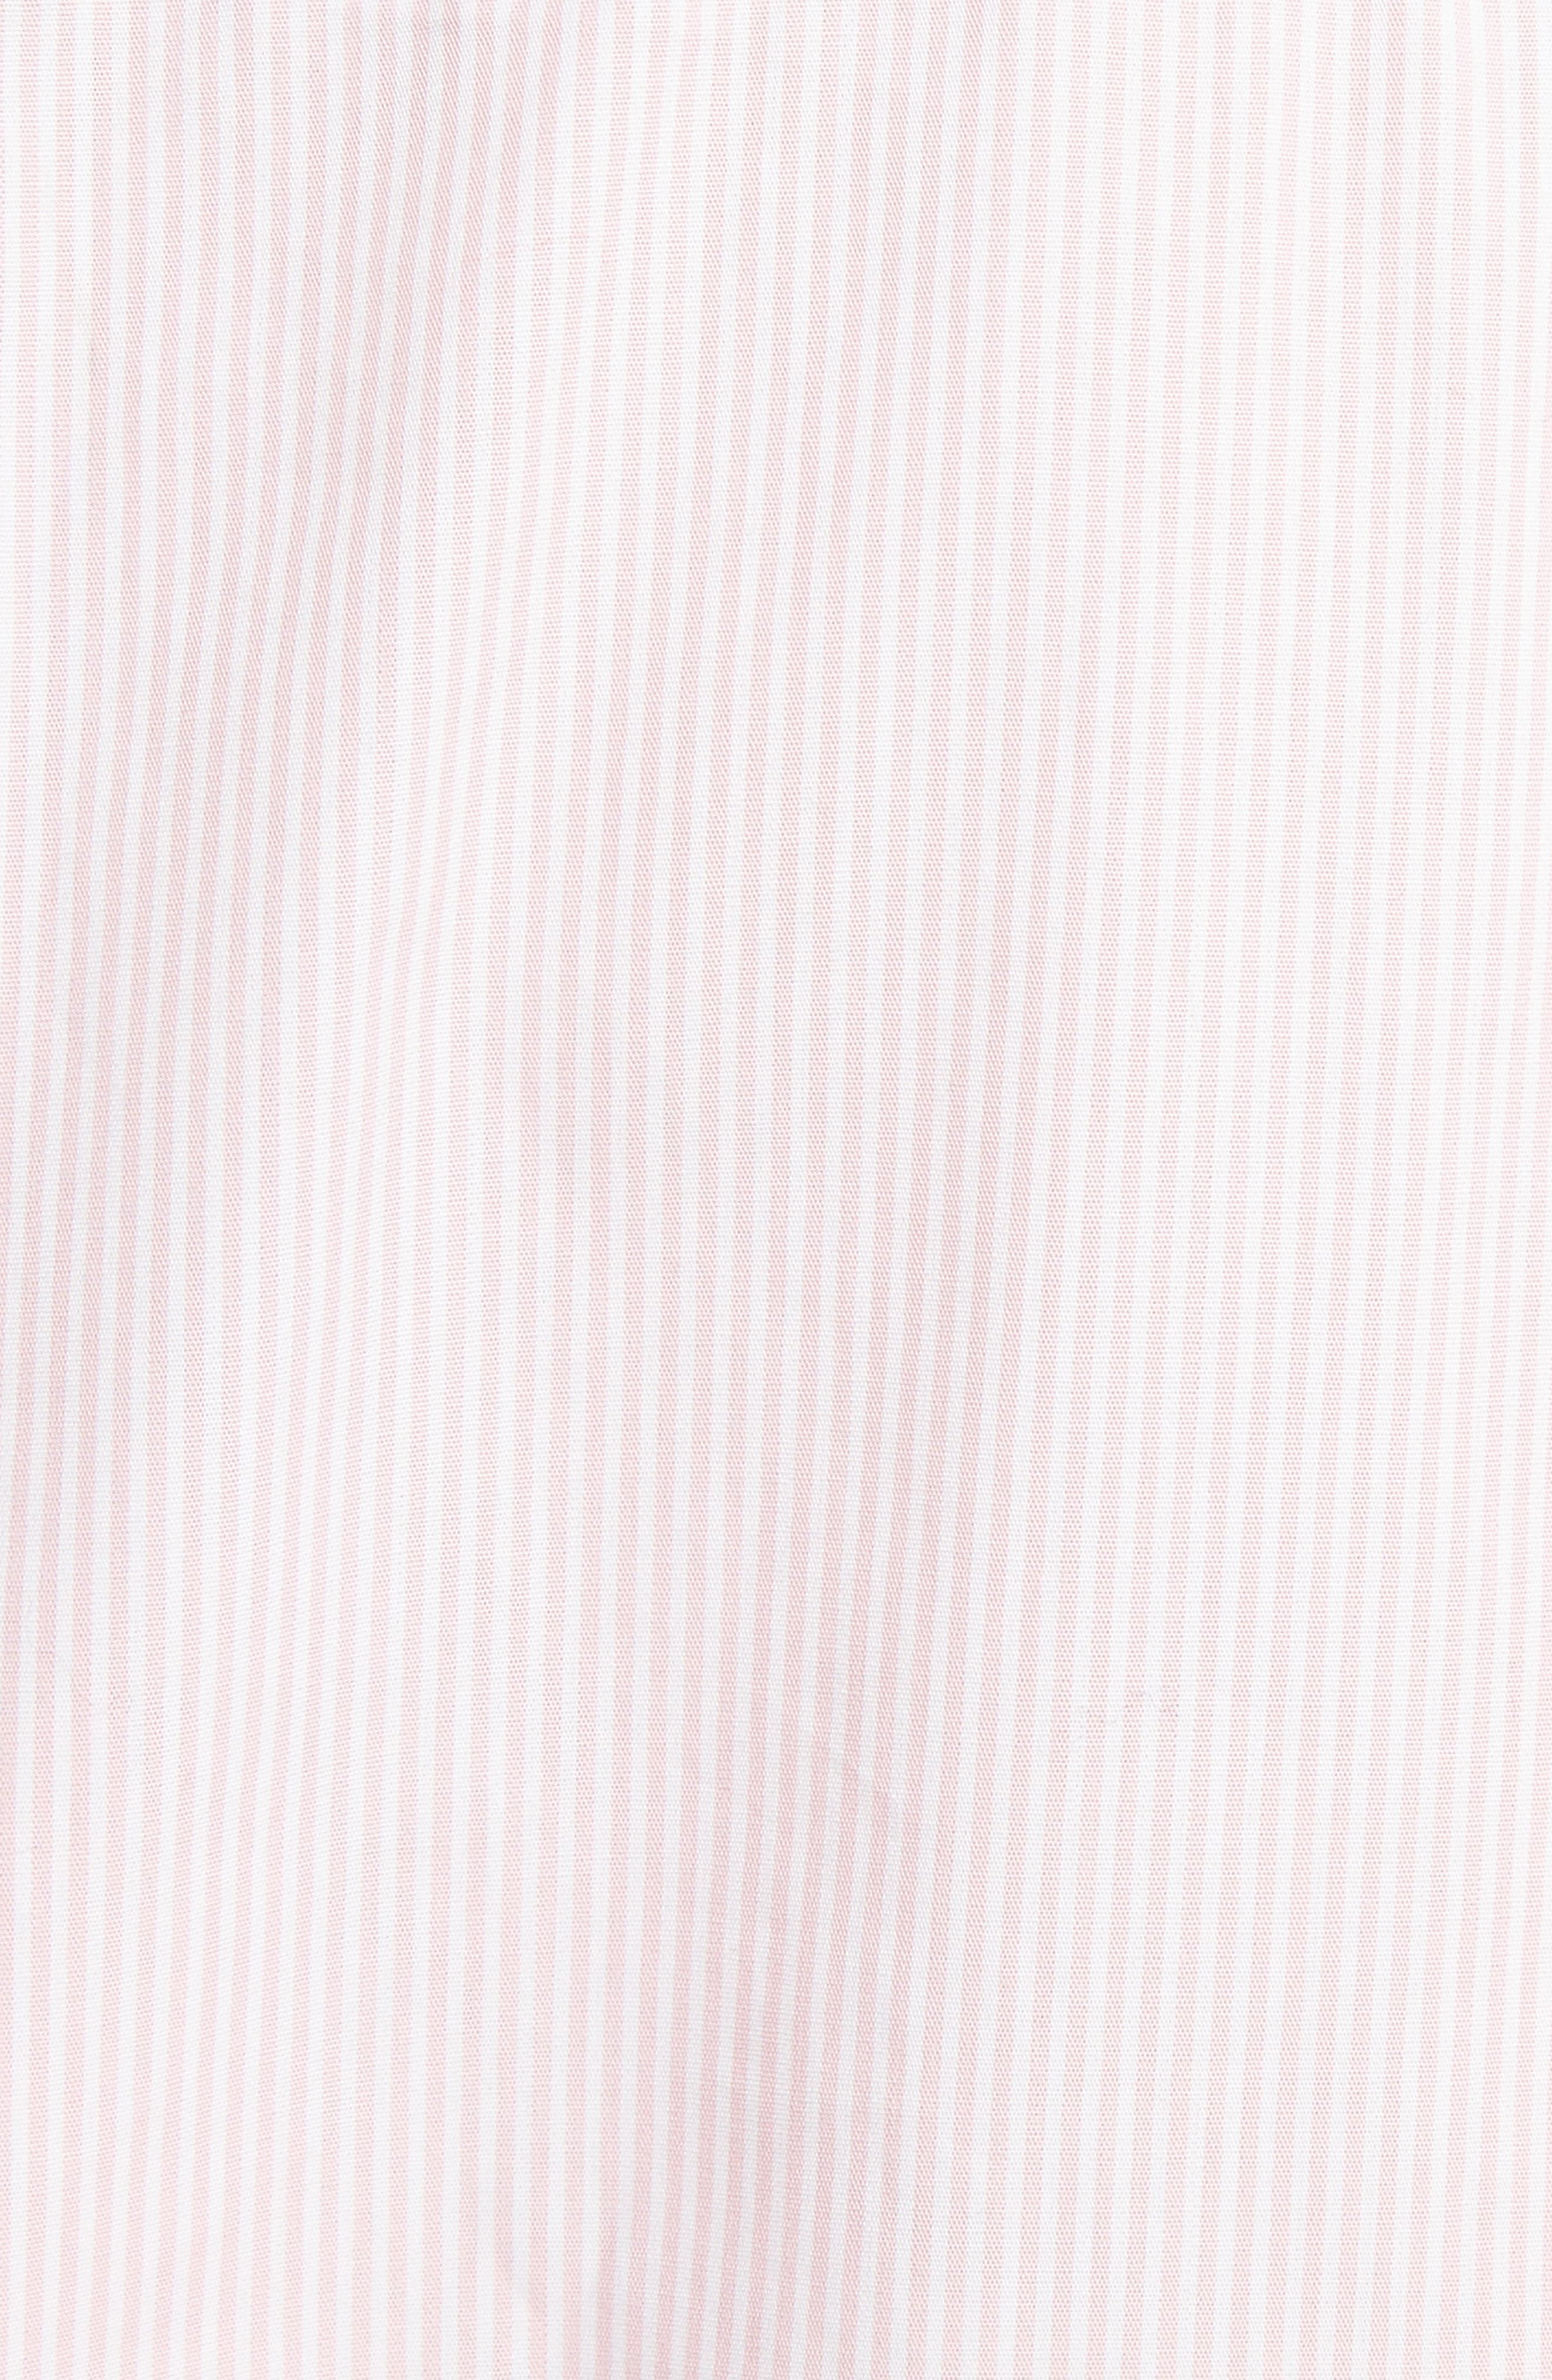 Beaded Pinstripe Shirt,                             Alternate thumbnail 5, color,                             Pink White Red